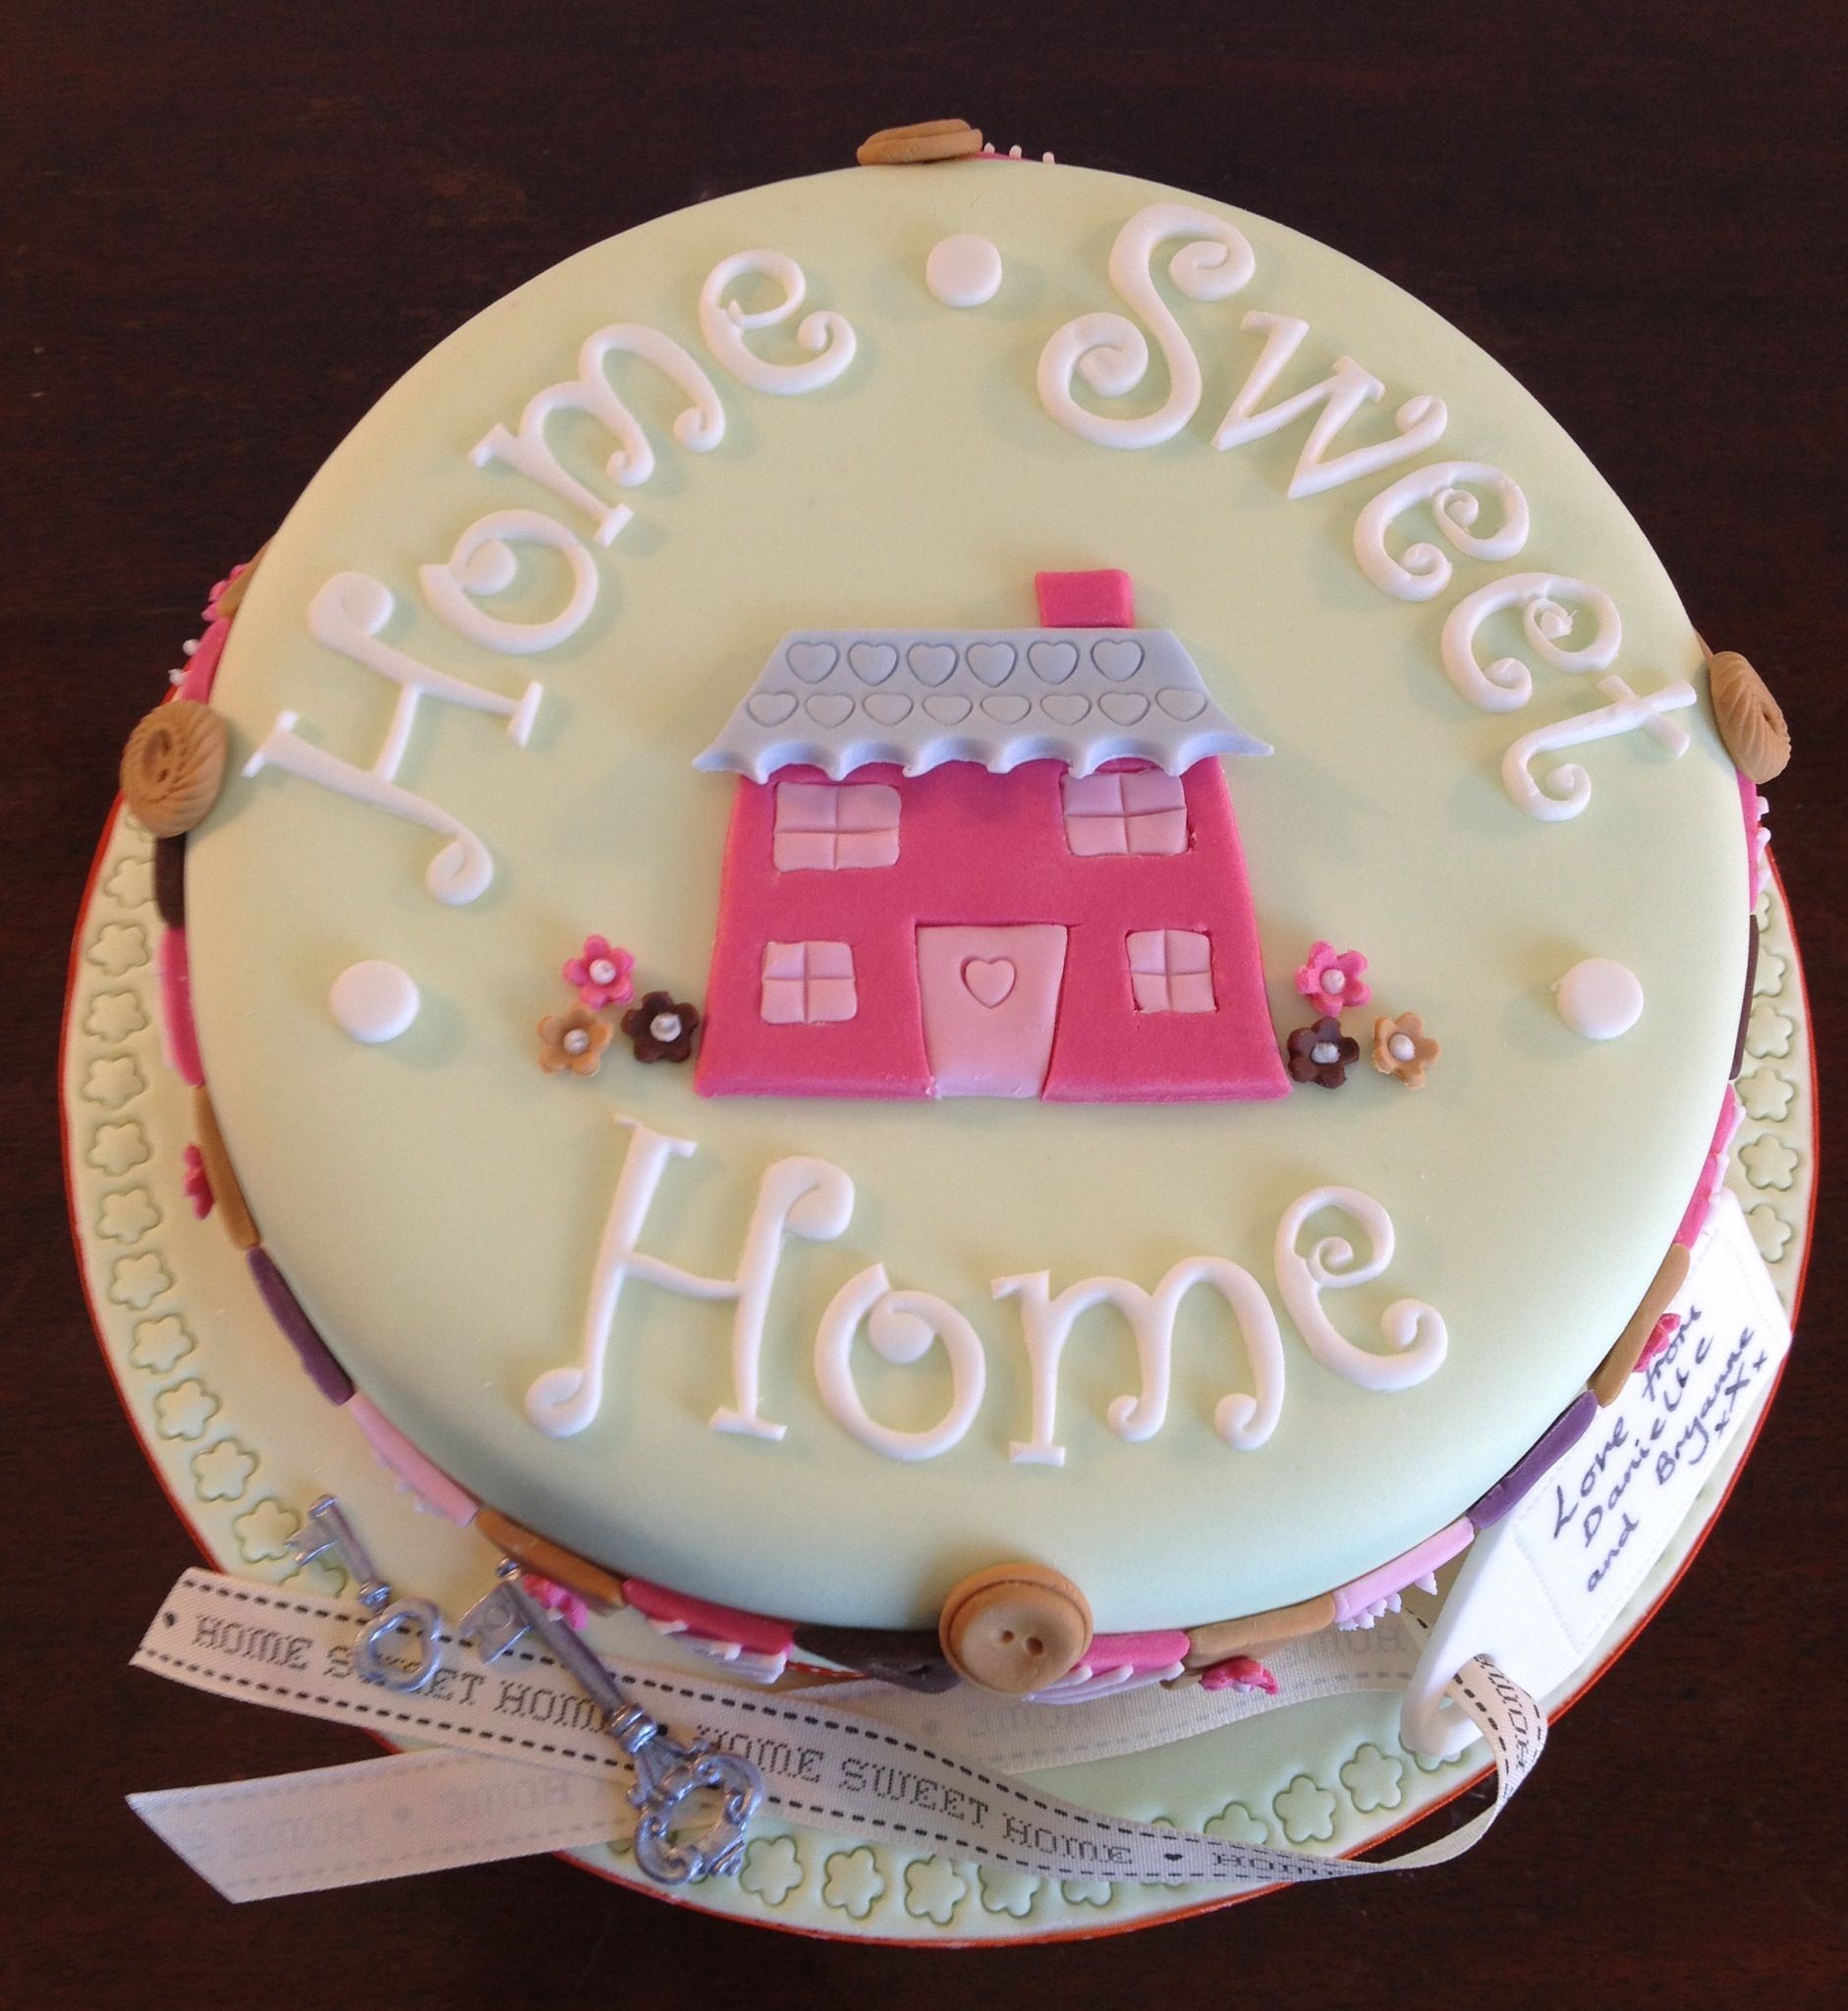 New Home Cake With Images Housewarming Cake Cake House Cake